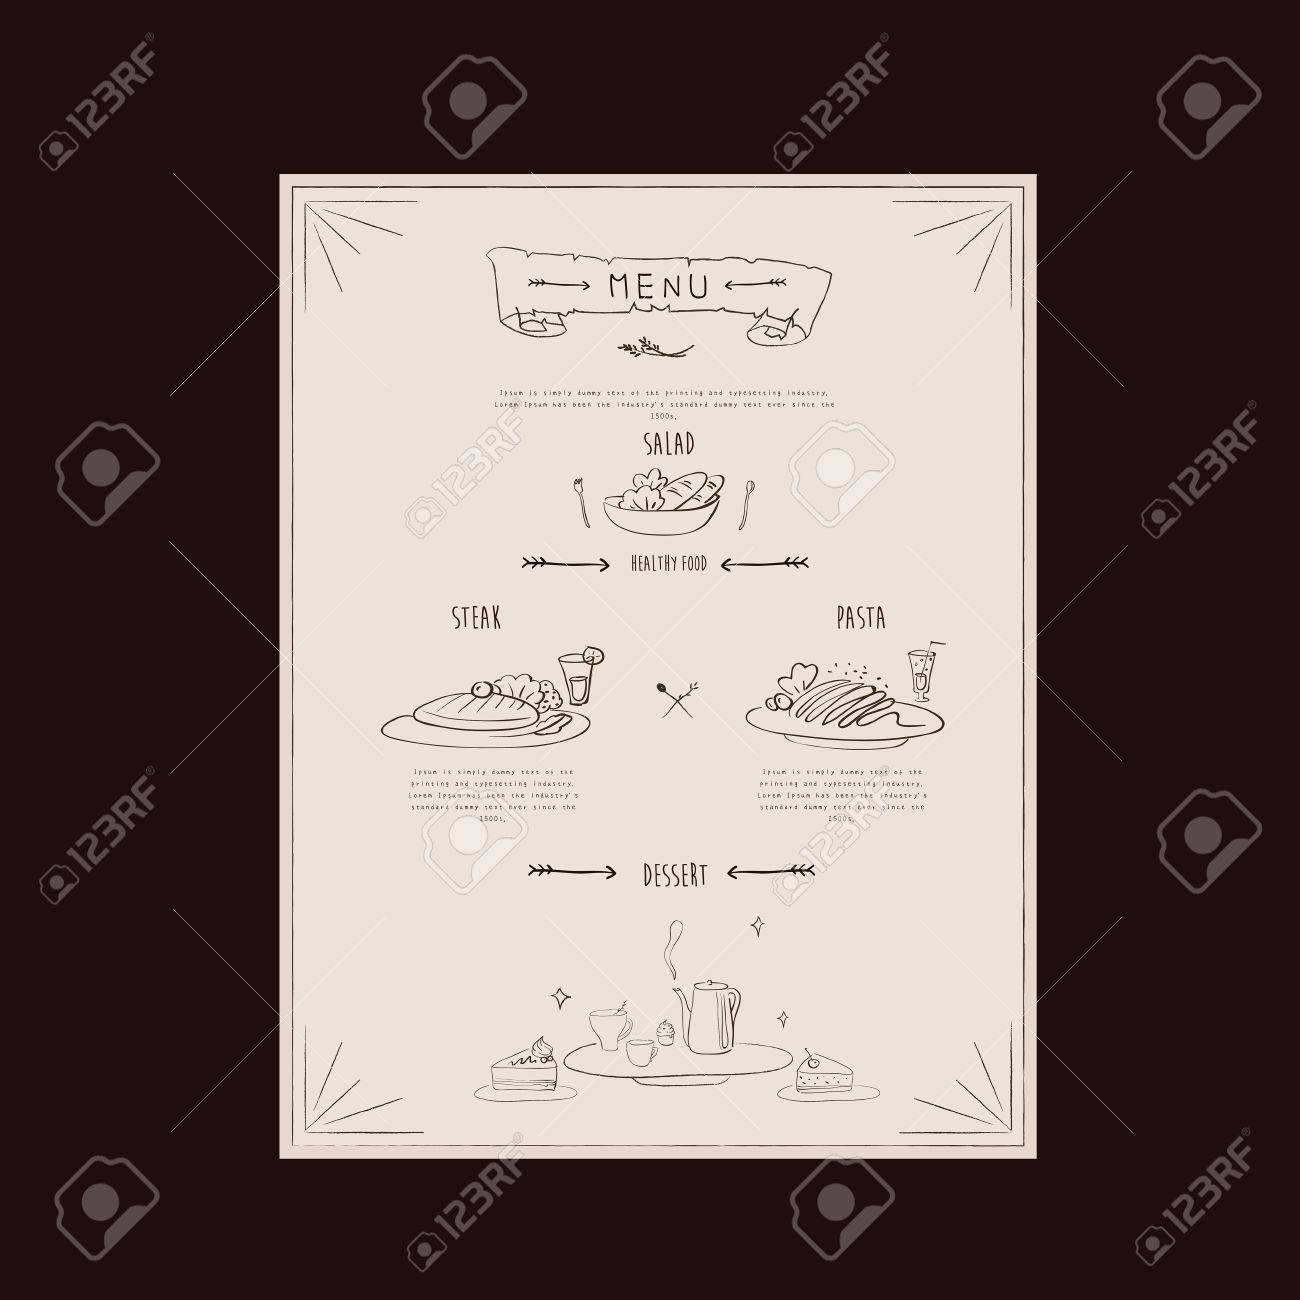 Elegant Restaurant Menu Design With Hand Drawn Food Graphics Royalty Free Cliparts Vectors And Stock Illustration Image 37172724